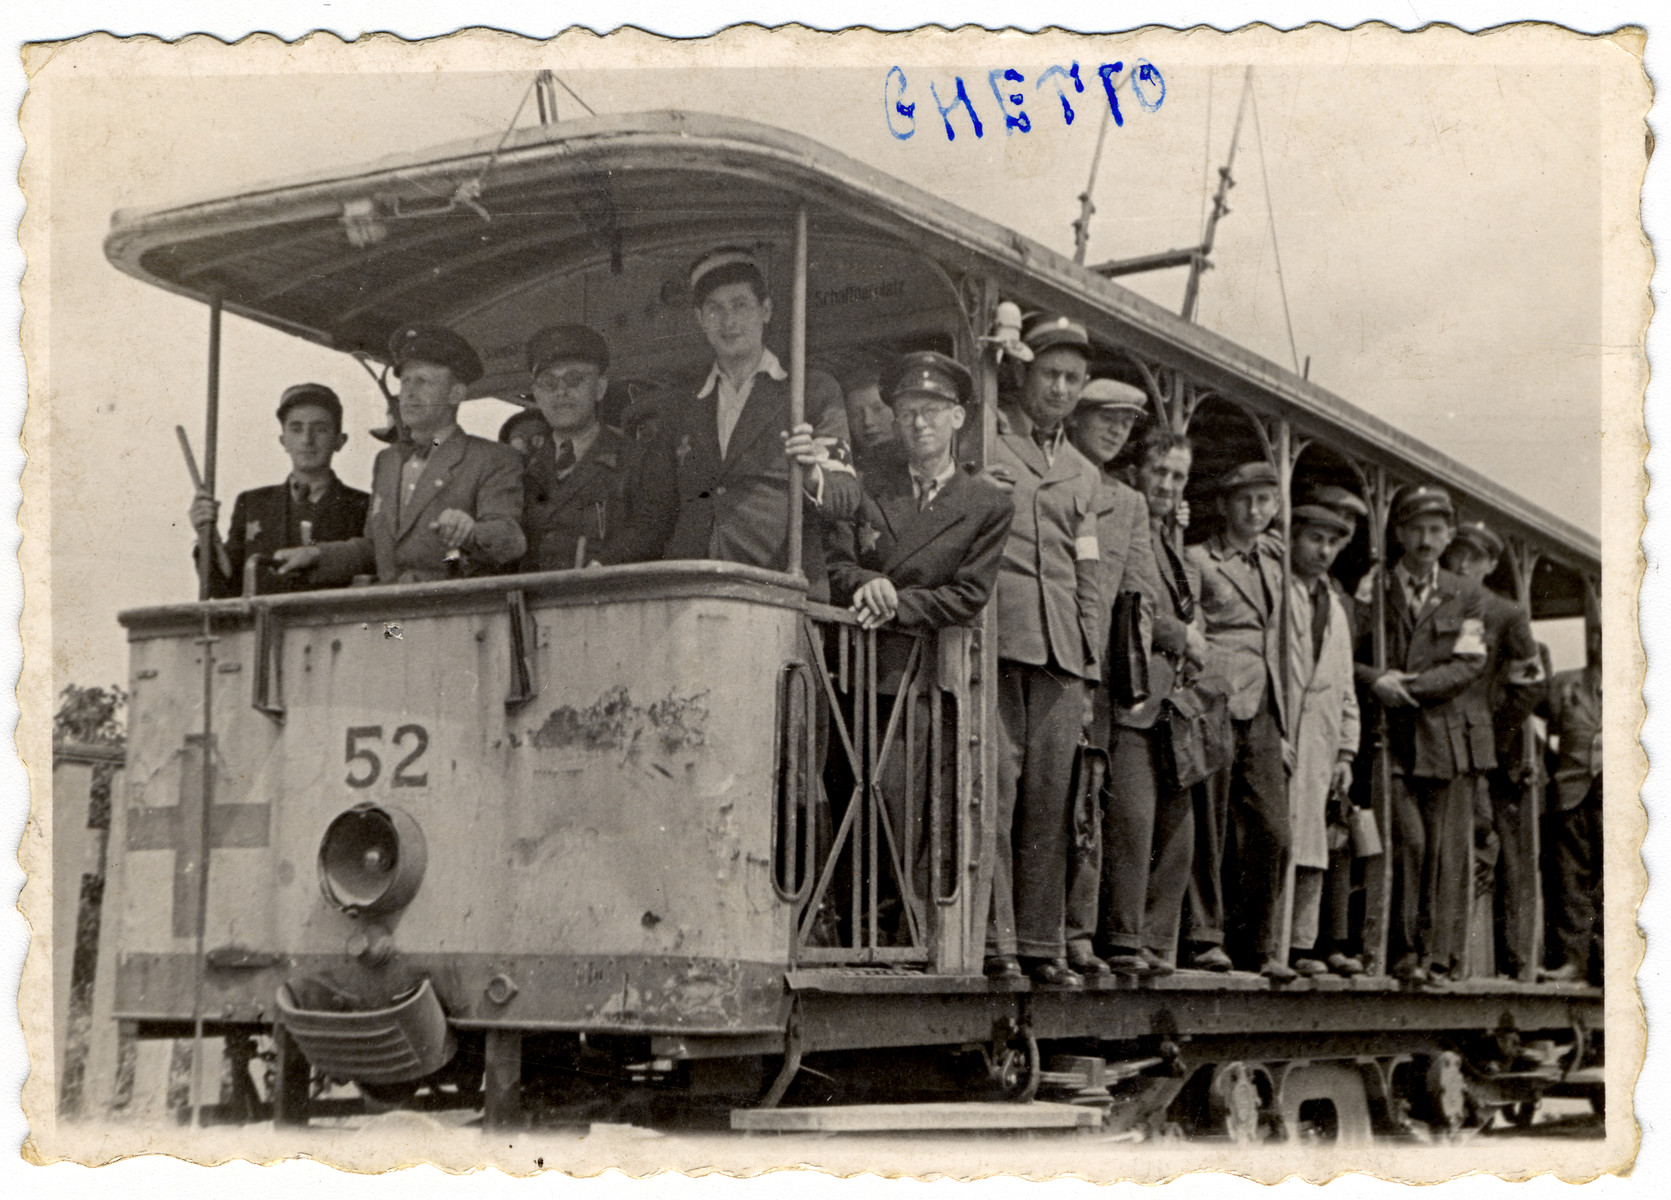 Group portrait of Jewish policemen posing on a streetcar of the Lodz ghetto.  The driver of the streetcar is Rozenbaum.